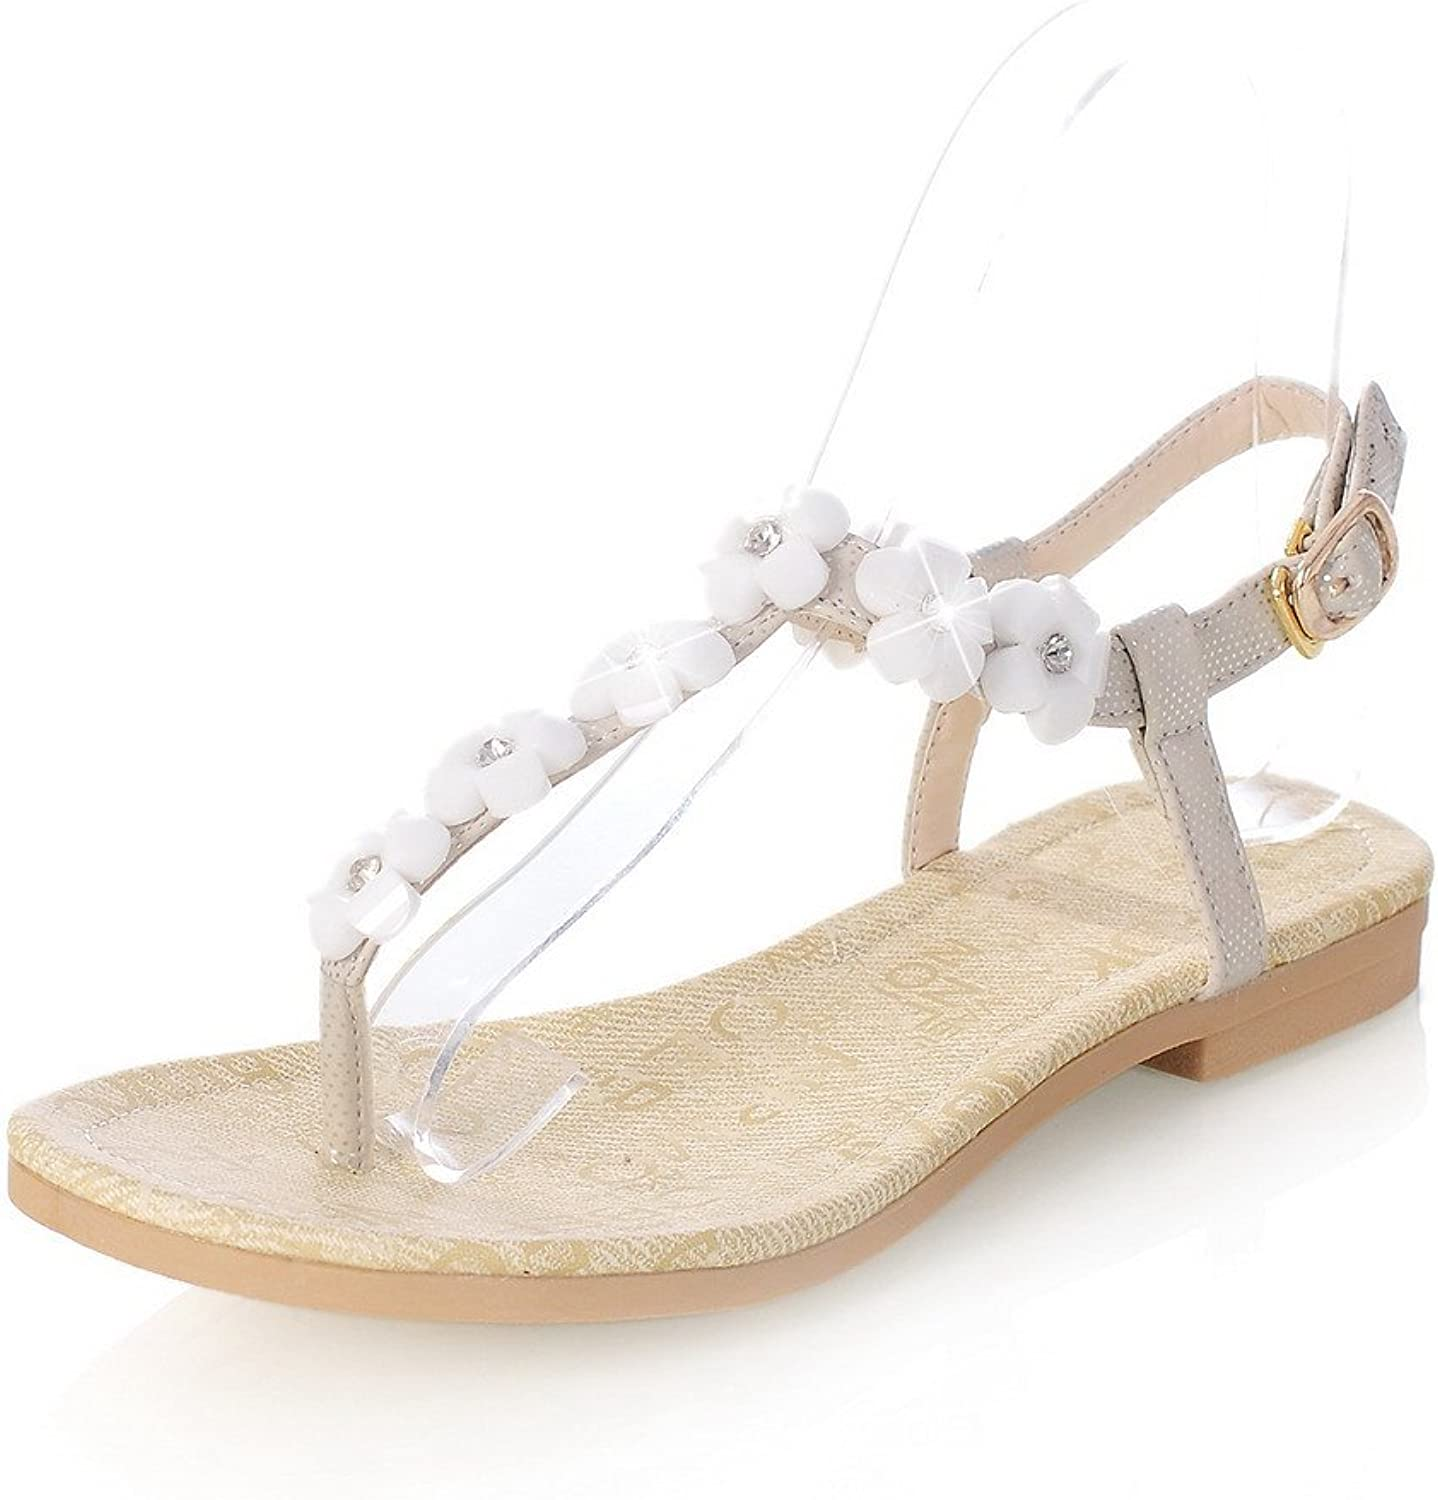 AmoonyFashion Womens Open Toe Low Heel Soft Material PU Solid Thong Sandals with Flowers, White, 7.5 B(M) US